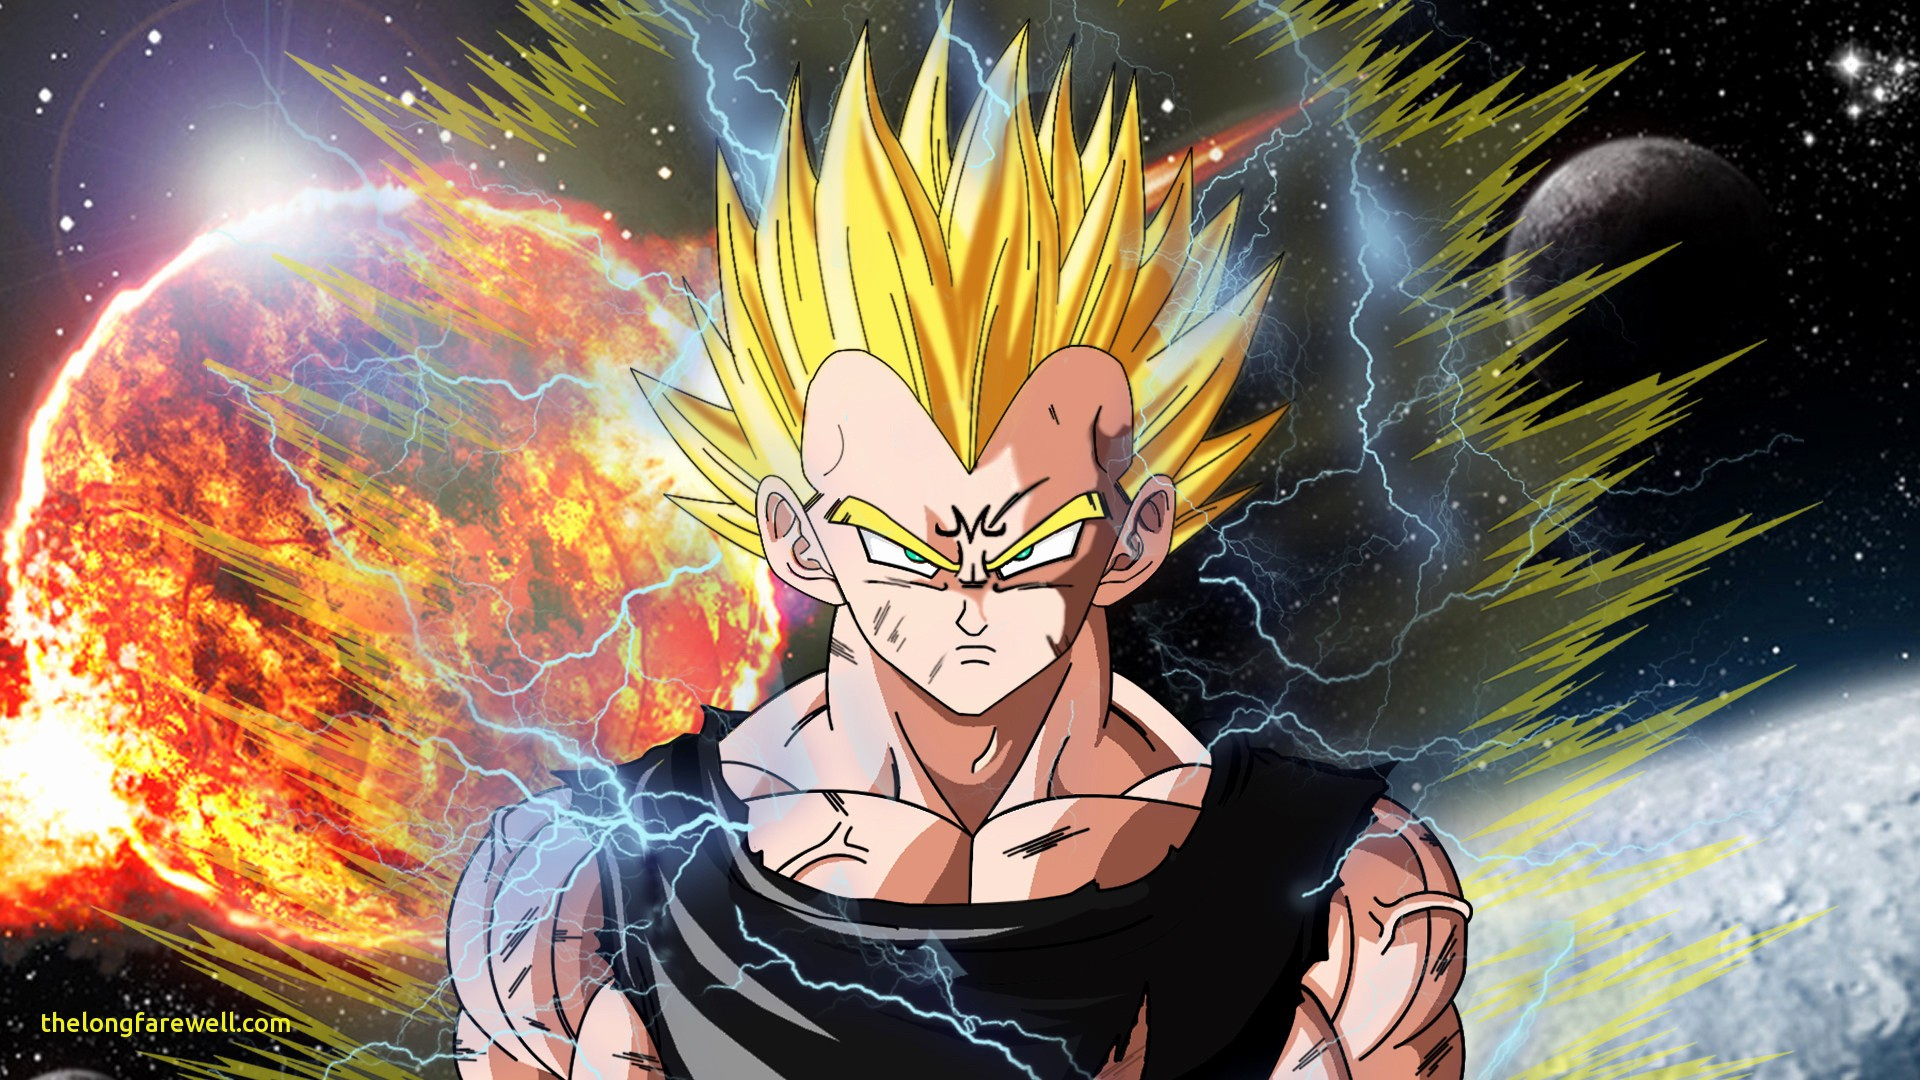 Live Wallpaper Dragonball Dragon Ball Vegeta Hd 1374035 Hd